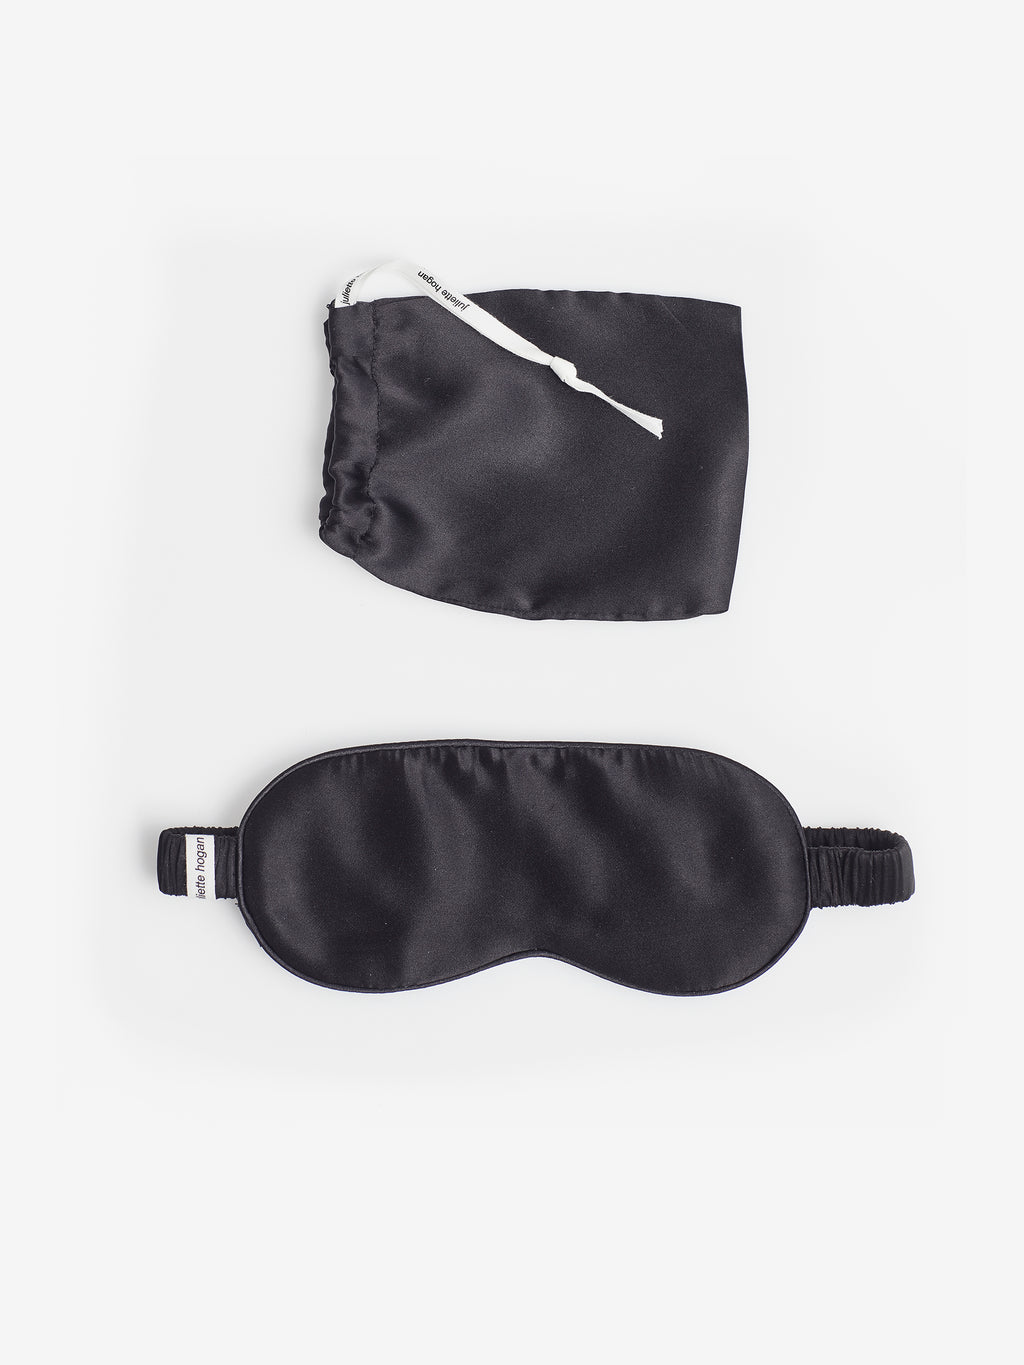 Silk Eyemask (made in China) Black